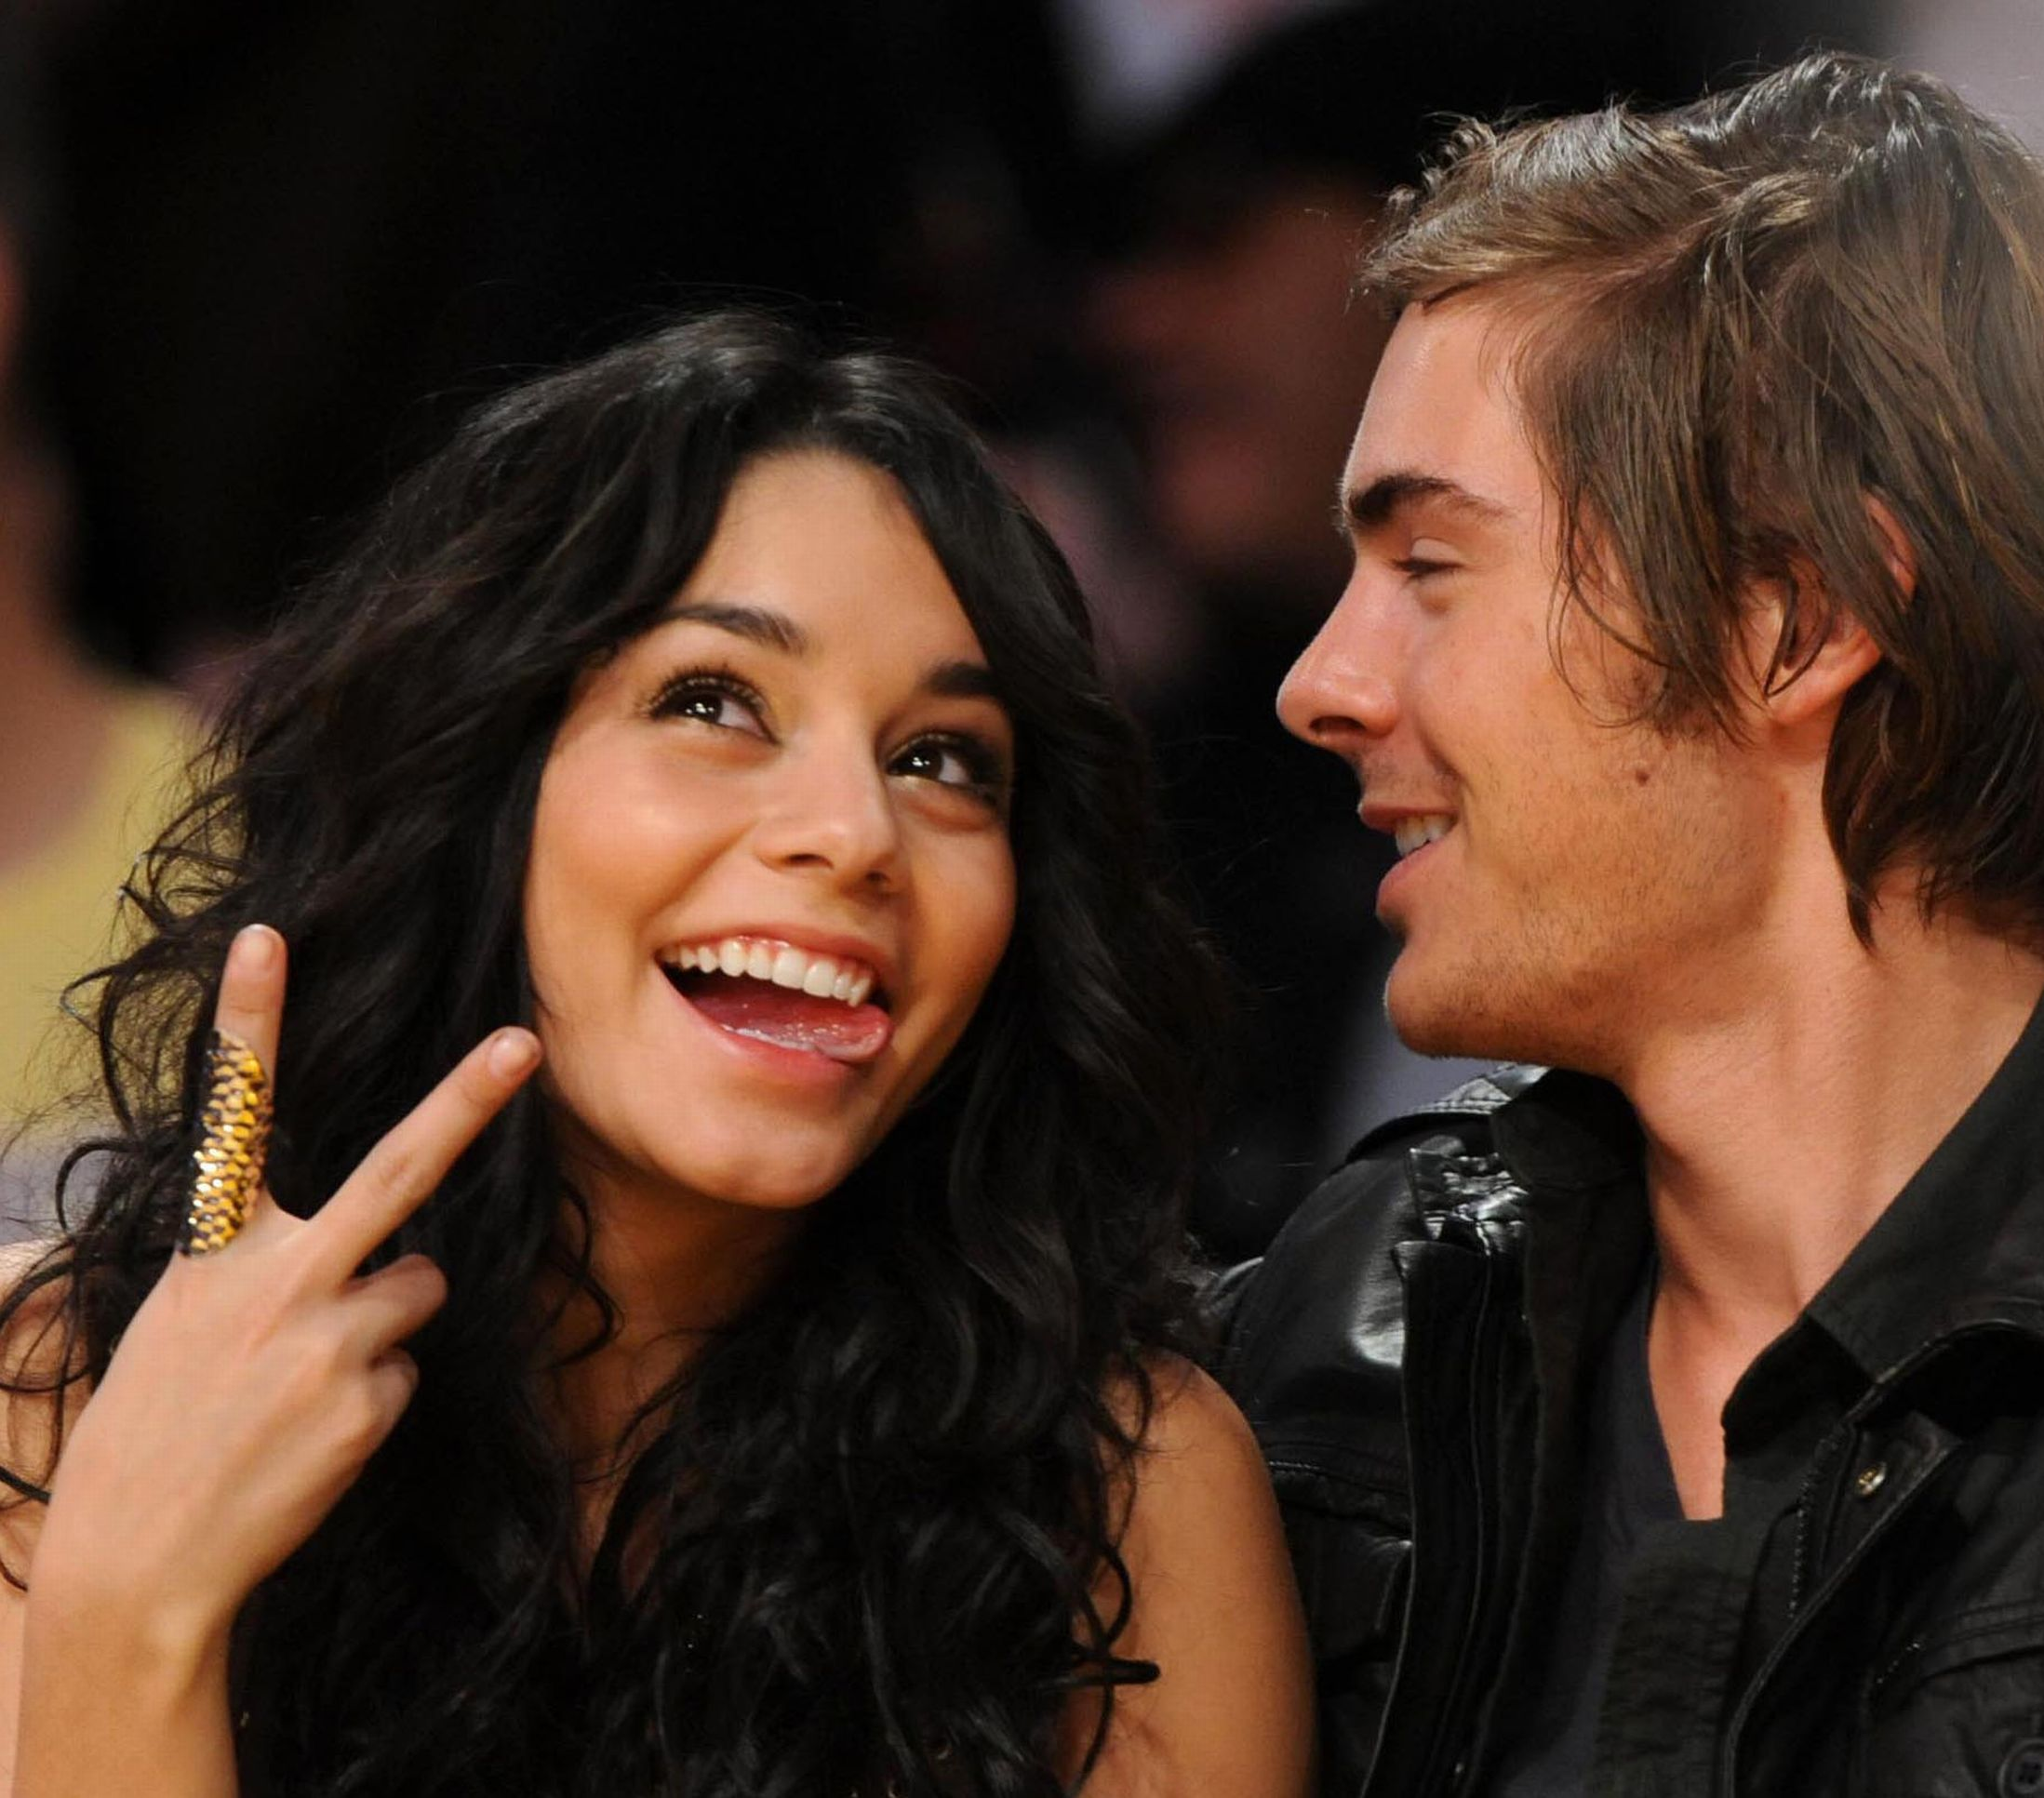 13768_vanessa-zac-lakers-to-celebutopia-09_122_214lo.jpg